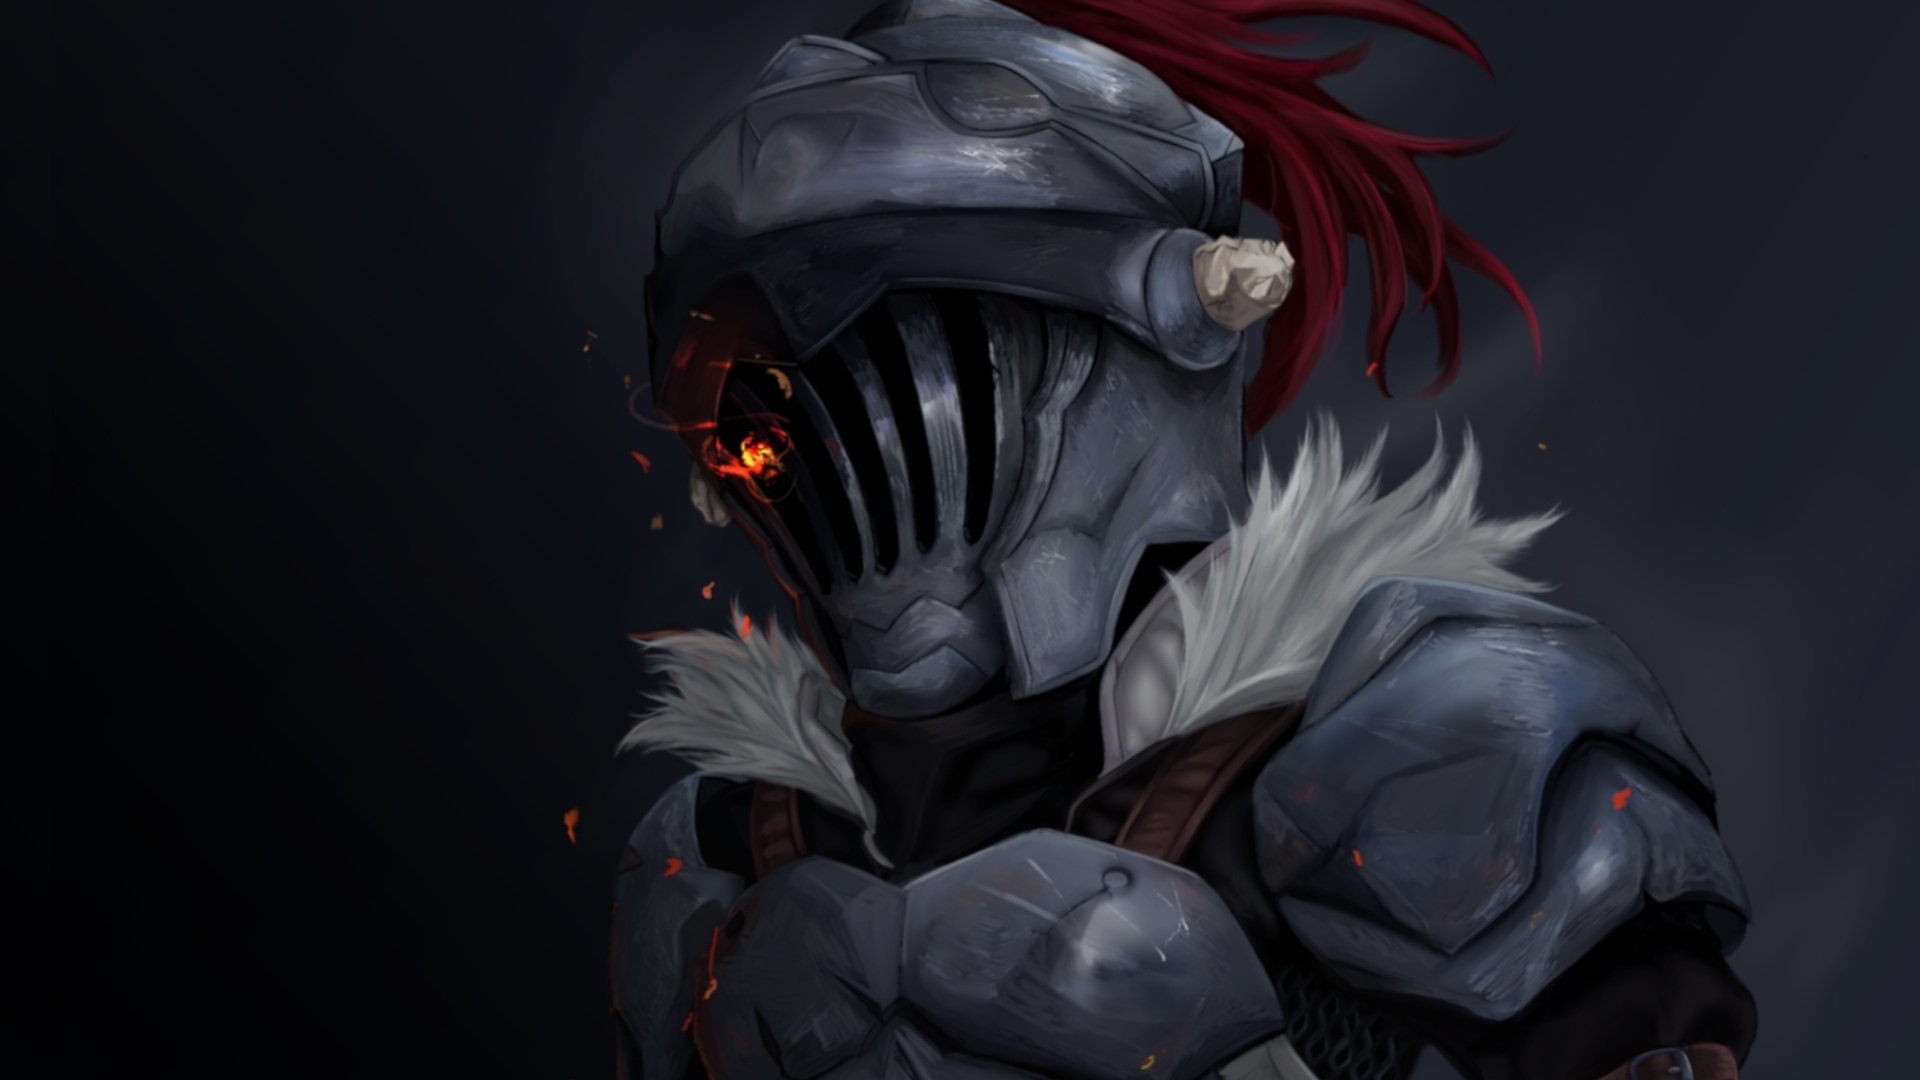 Download 1920x1080 wallpaper anime goblin slayer soldier - Anime backgrounds hd 1920x1080 ...